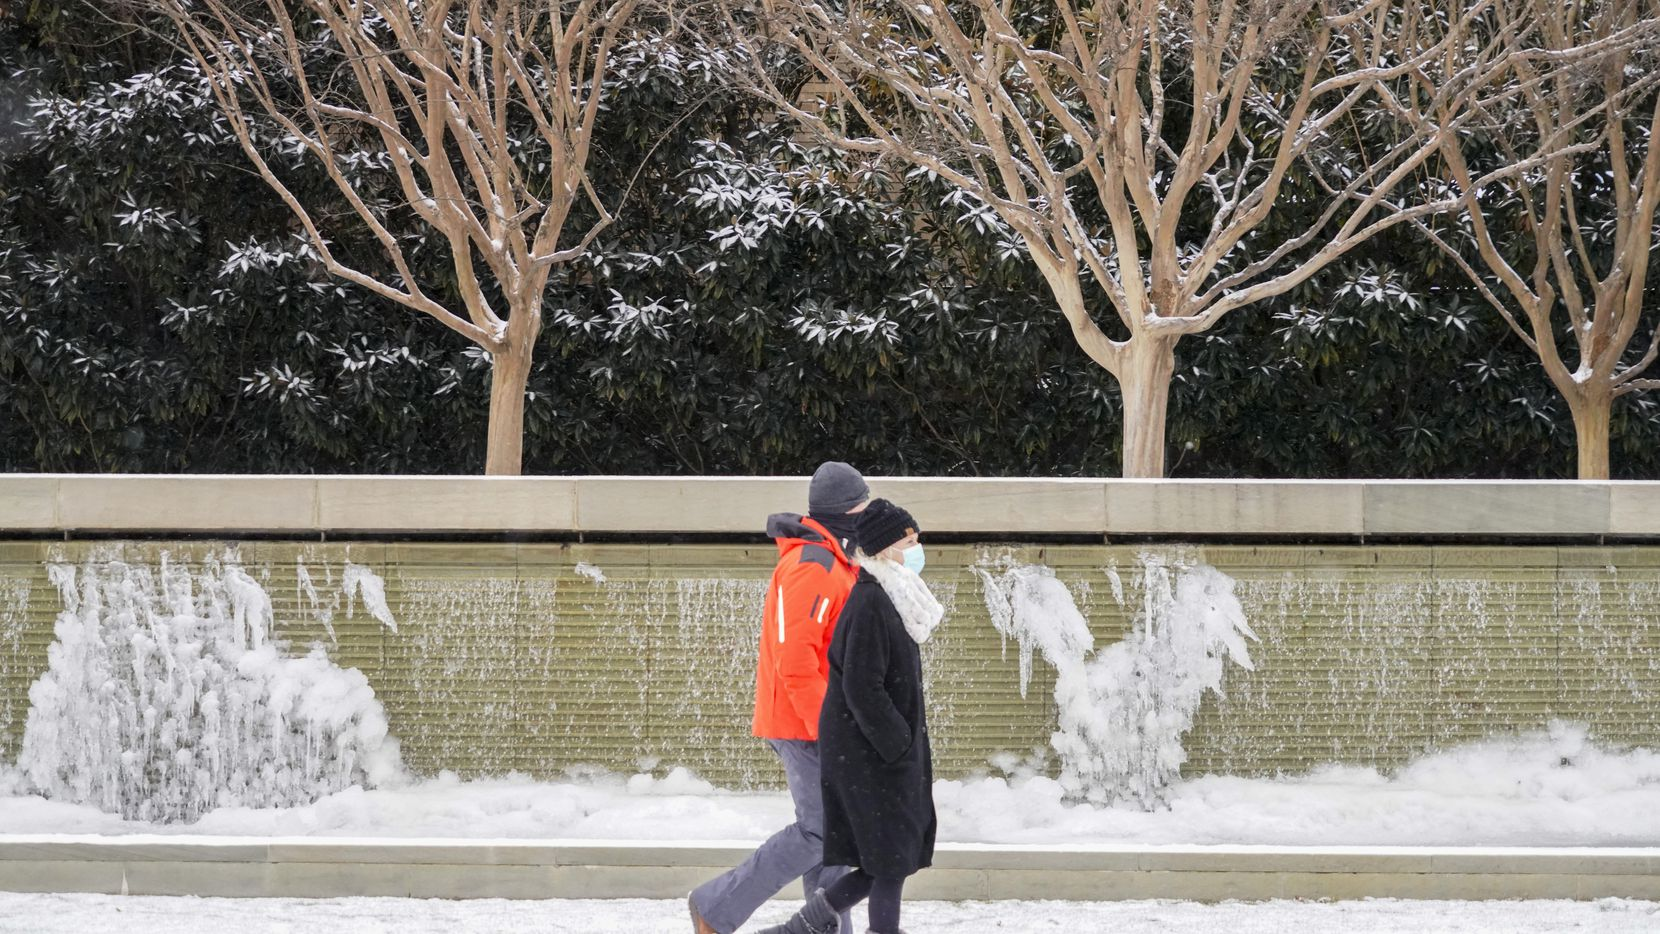 People walk past frozen fountains on Hillcrest near Lovers lane as a winter storm brings snow and freezing temperatures to North Texas on Sunday, Feb. 14, 2021, in University Park.